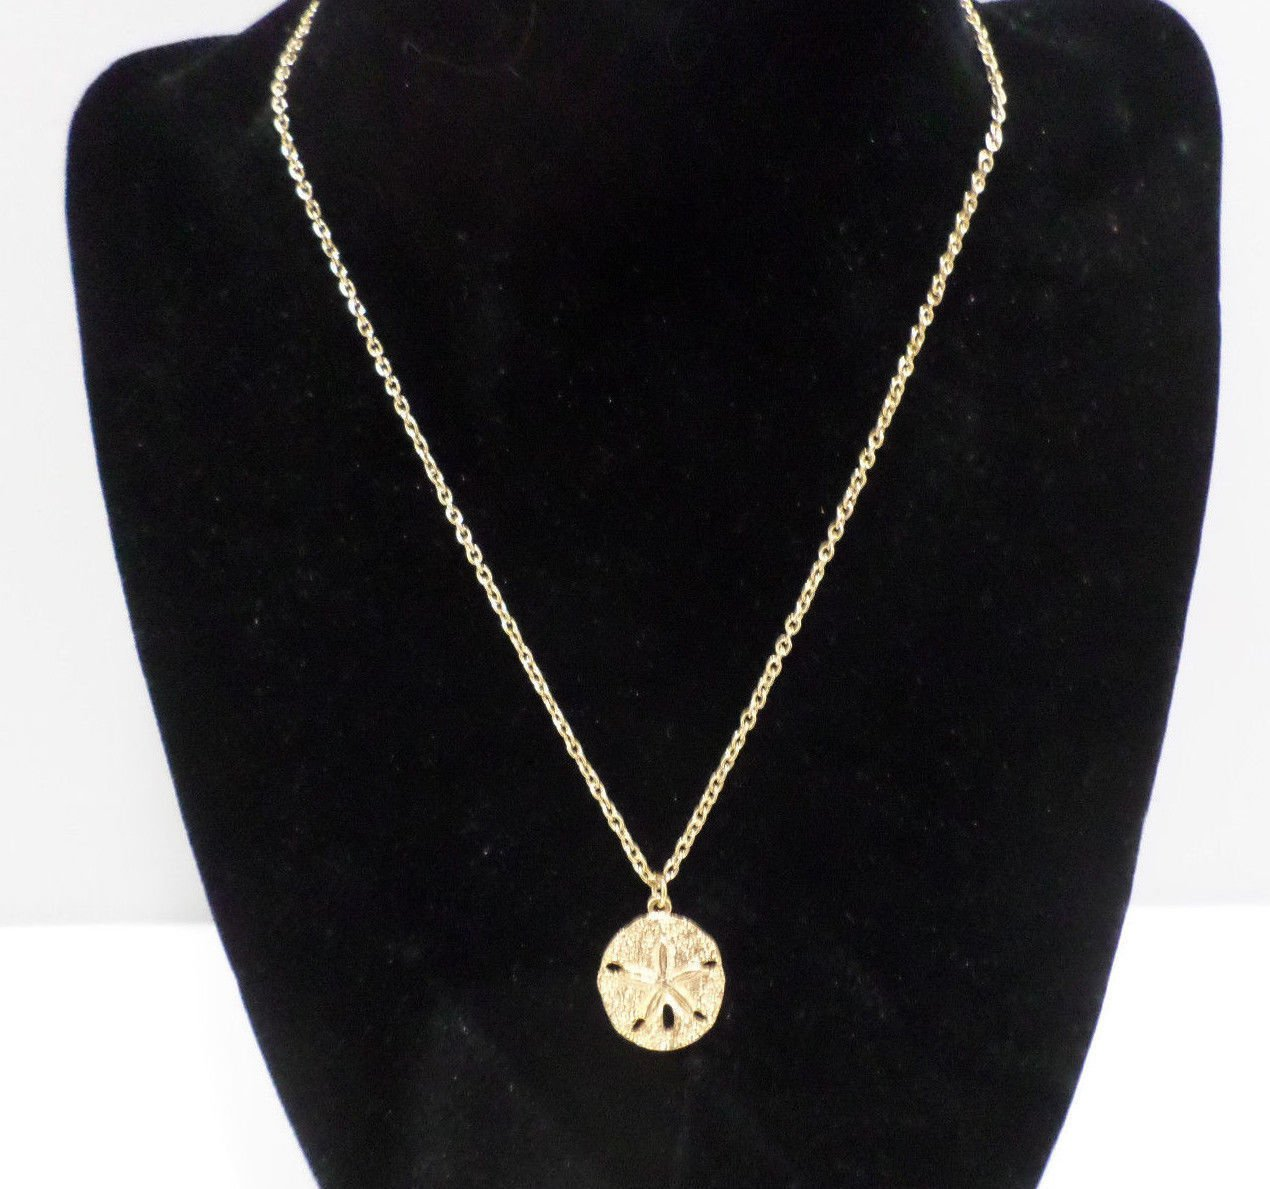 Necklace Gold Tone Metal Chain with Gold Tone Metal round starfish Pendant